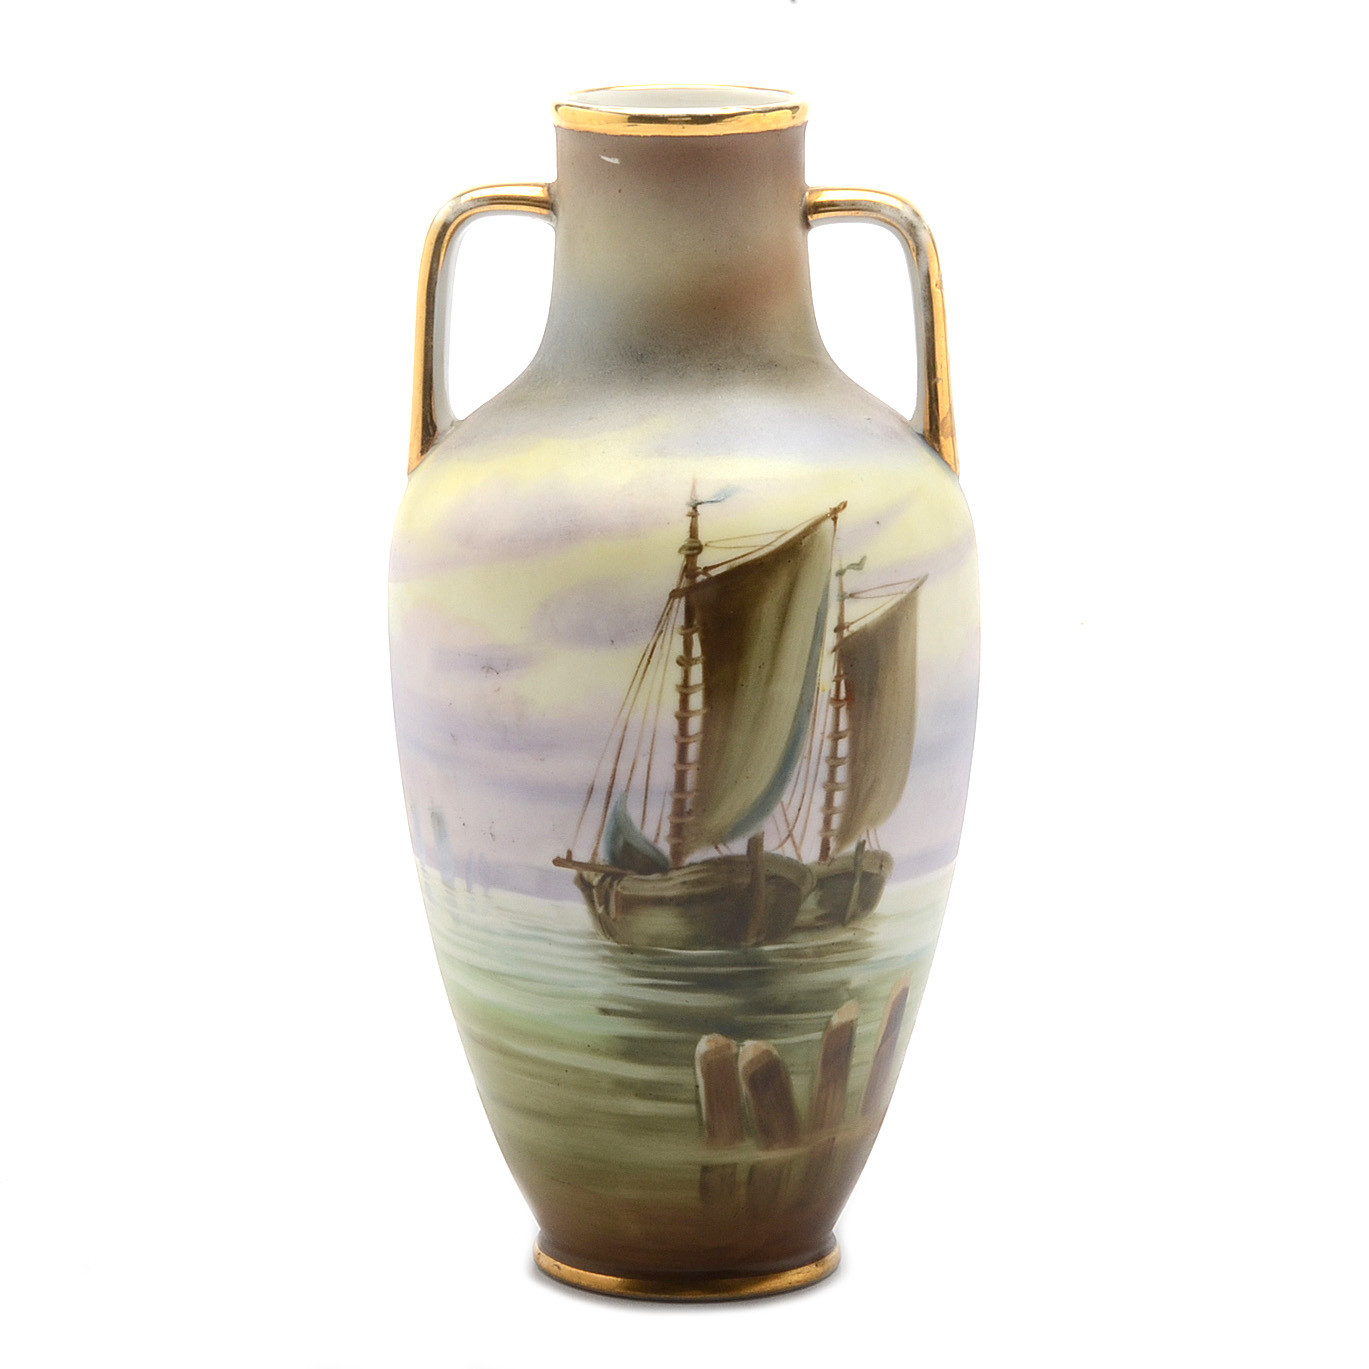 royal nippon vase value of all hand painted nippon vase www imagenesmy com with regard to antique hand painted nippon vase ebth jpg 880x880 all hand painted nippon vase